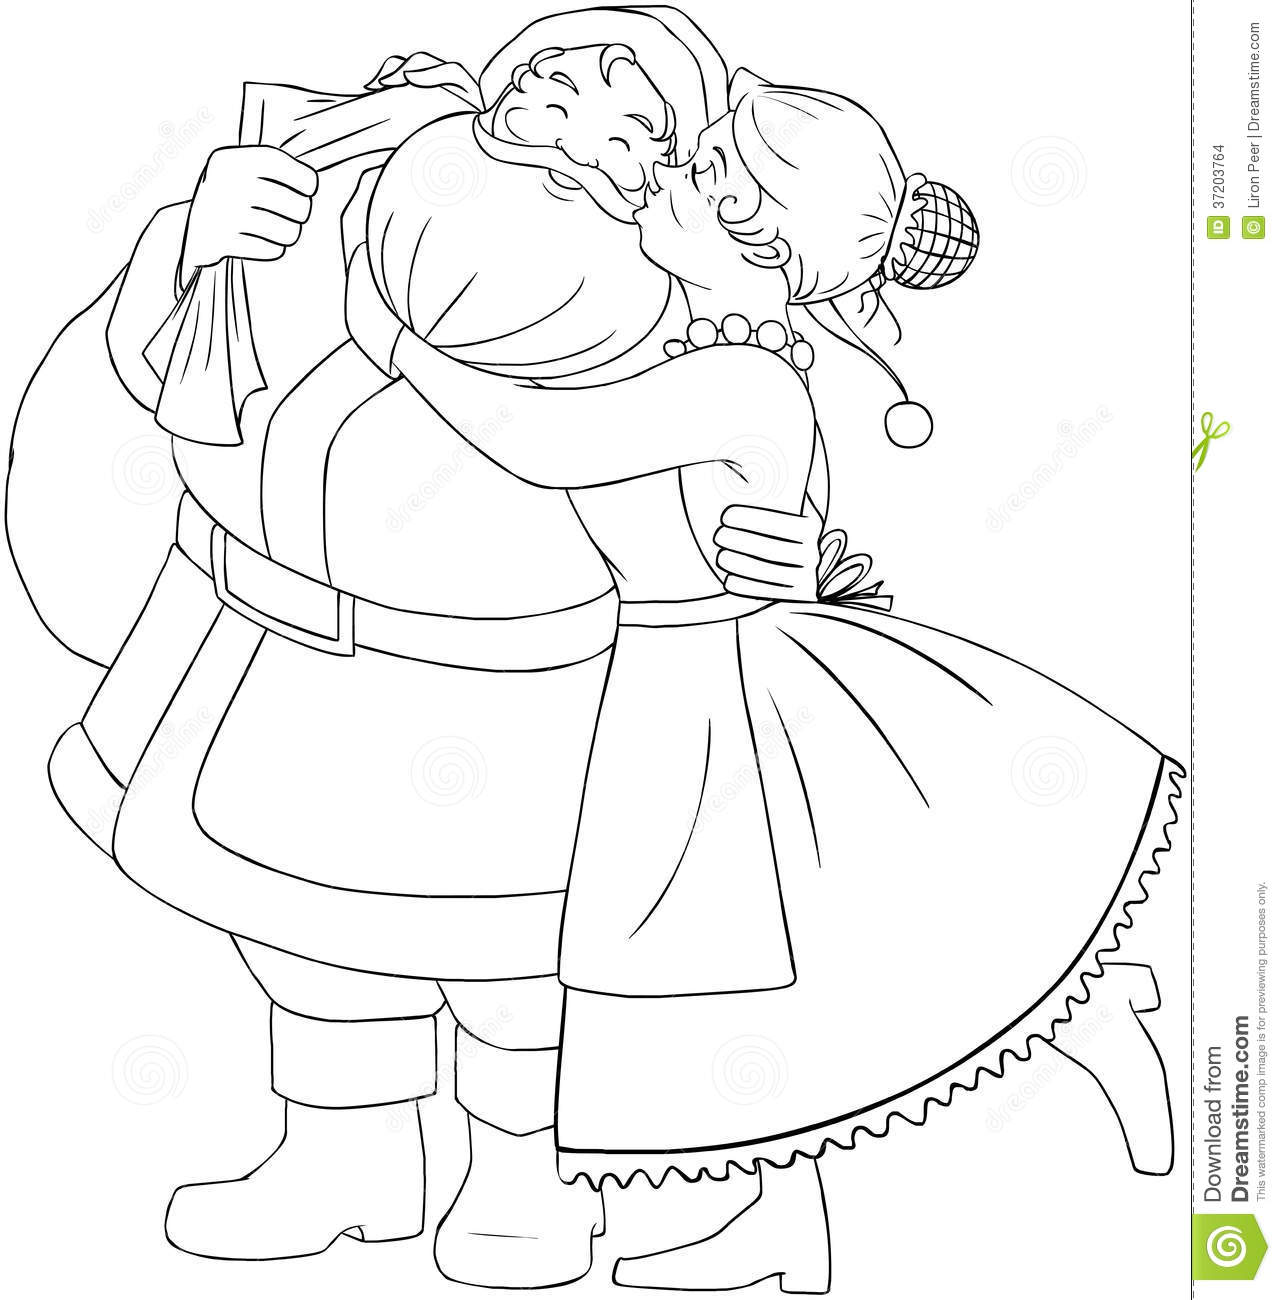 Mr. & Mrs. Claus Coloring Page - Free Christmas Recipes, Coloring Pages for  Kids & Santa Letters - Free-N-Fun Christmas | 1300x1281